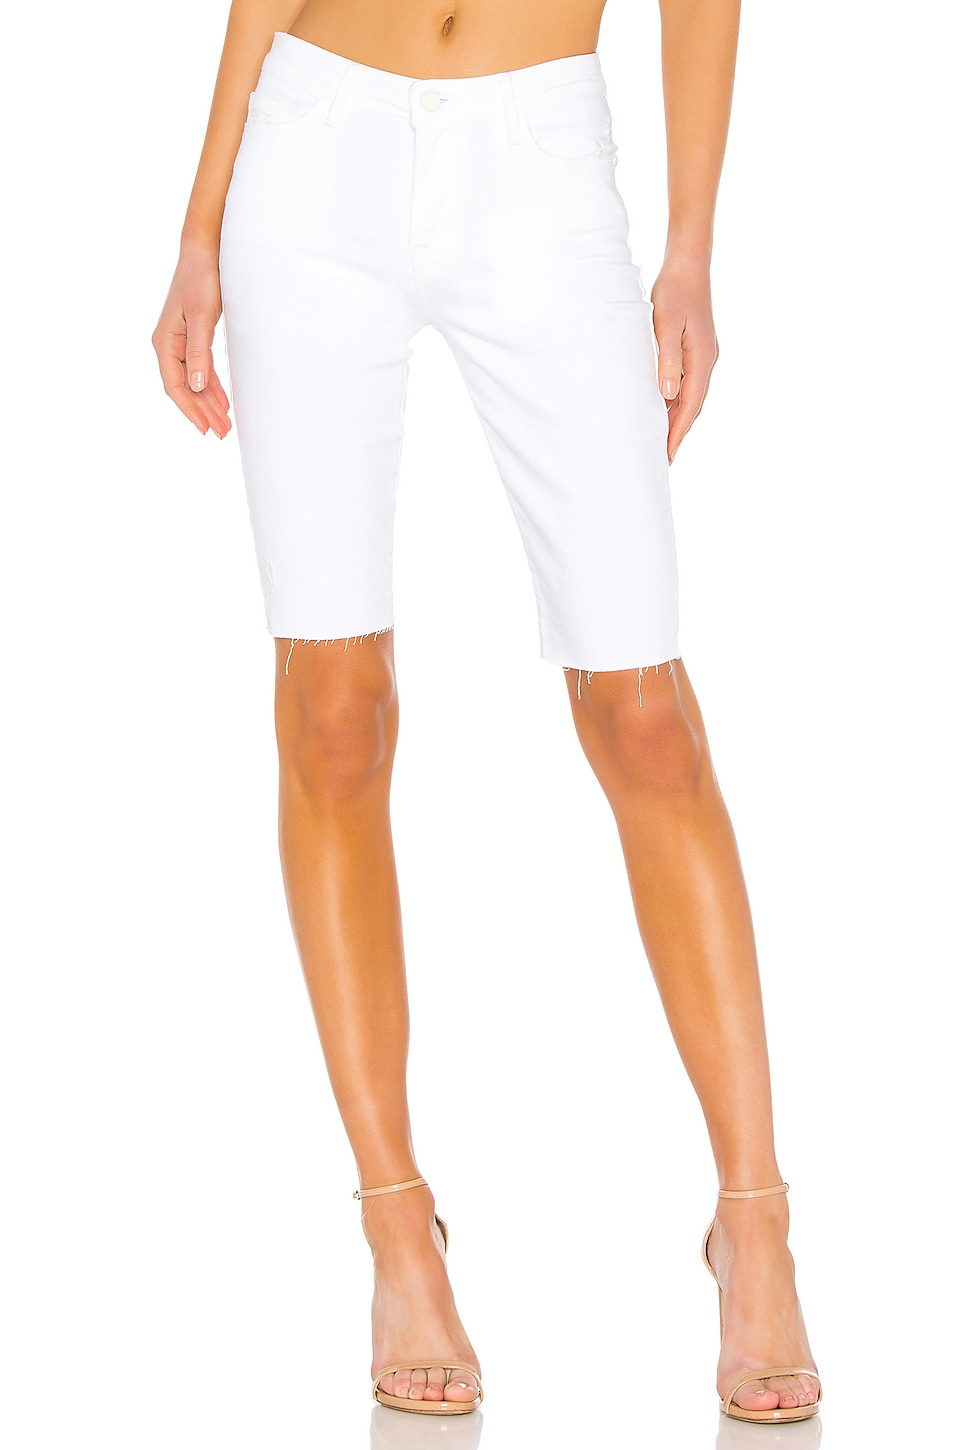 Sanctuary Endless Summer Bermuda Short in Malibu White